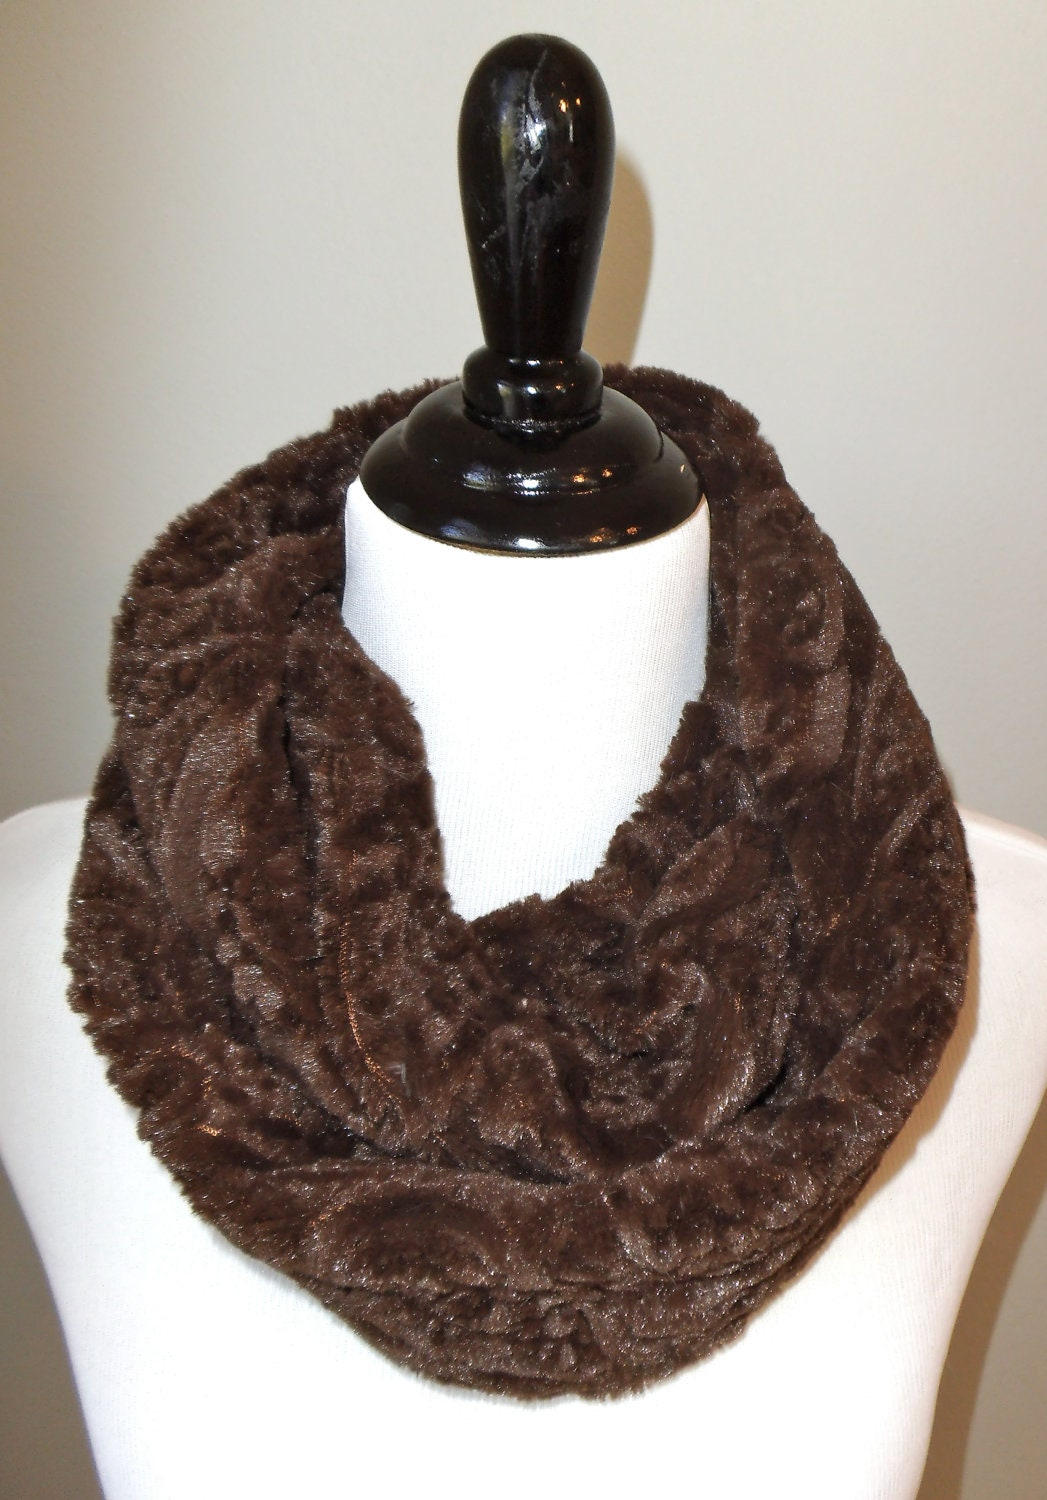 Minky Infinity Scarf  - Chocolate Brown Paisley Textured Minky -  Faux Fur - Warm and Soft - Loop Scarf